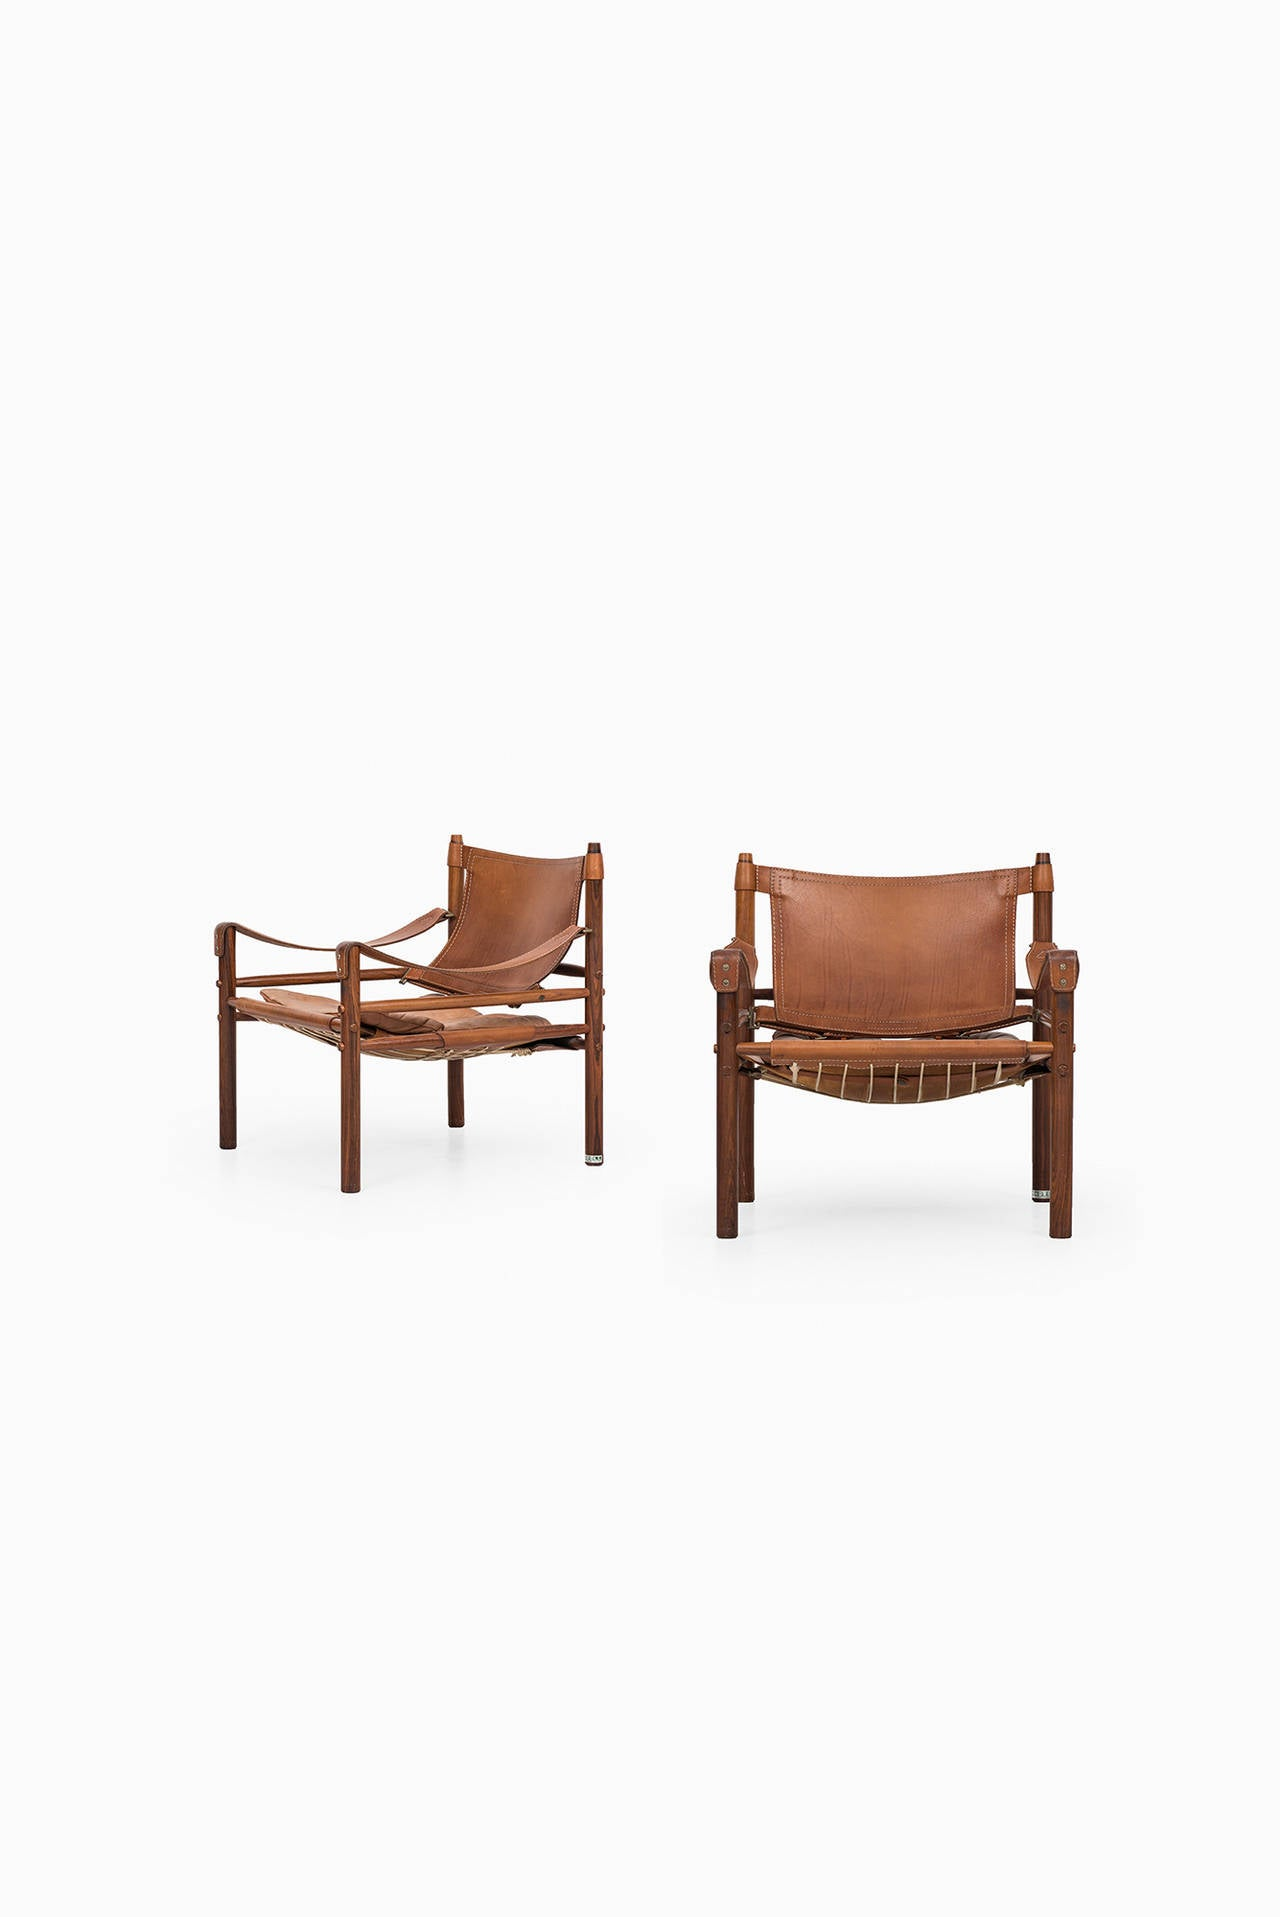 A pair of safari chairs model Sirocco in rosewood and brown leather designed by Arne Norell. Produced by Arne Norell AB in Aneby, Sweden.